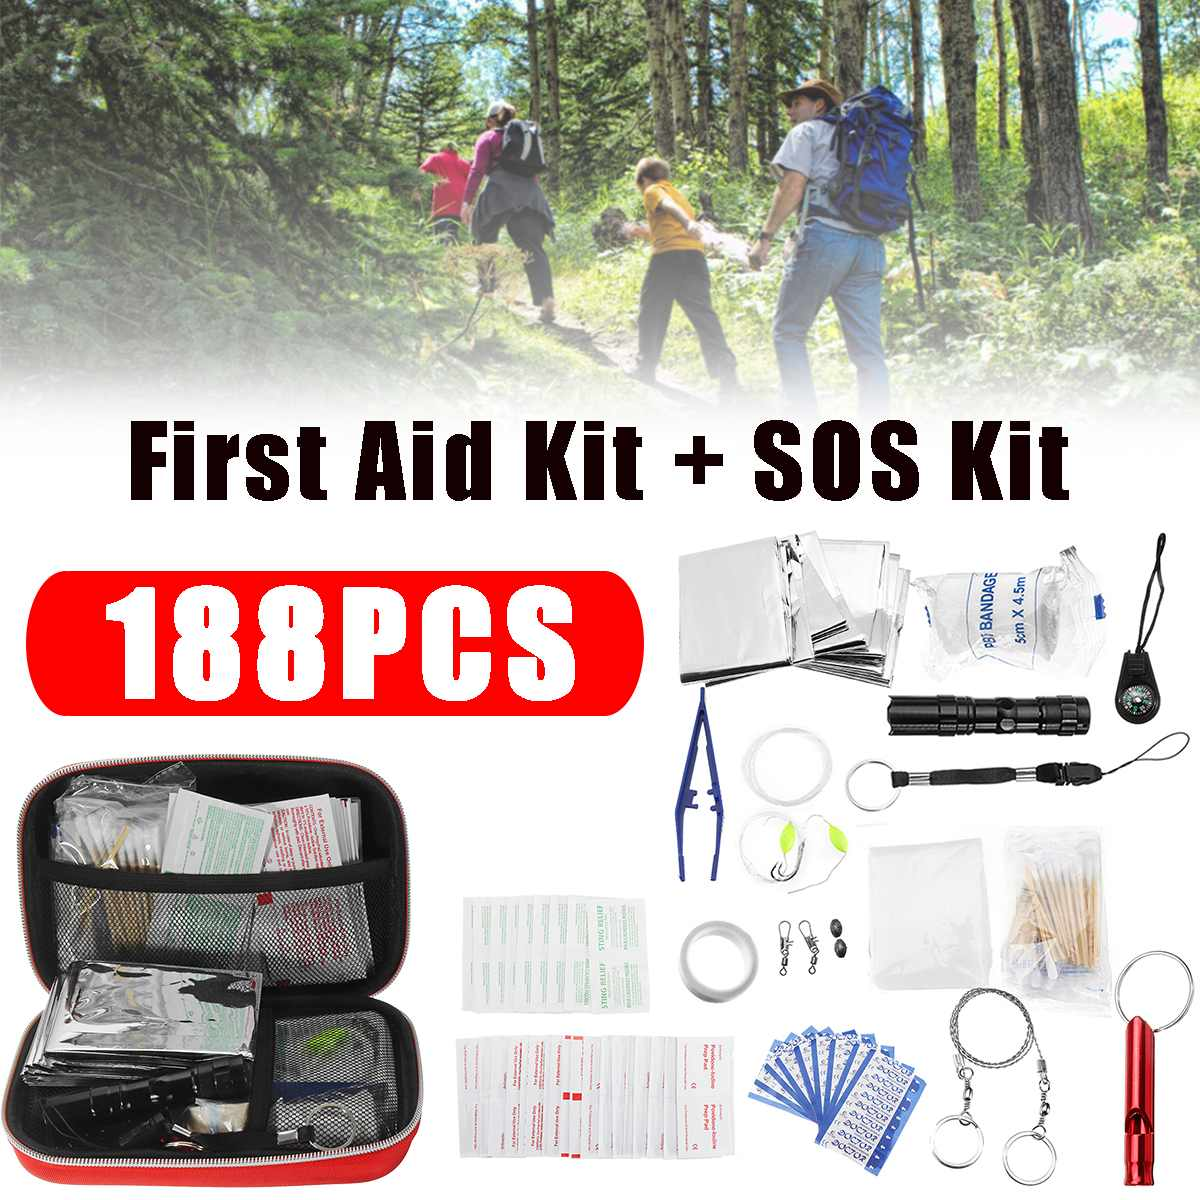 188pcs First Aid Kit Travel Bag Small Medical Emergency Equipment Survival Hiking Camping Box Lightweight Versatile Portable